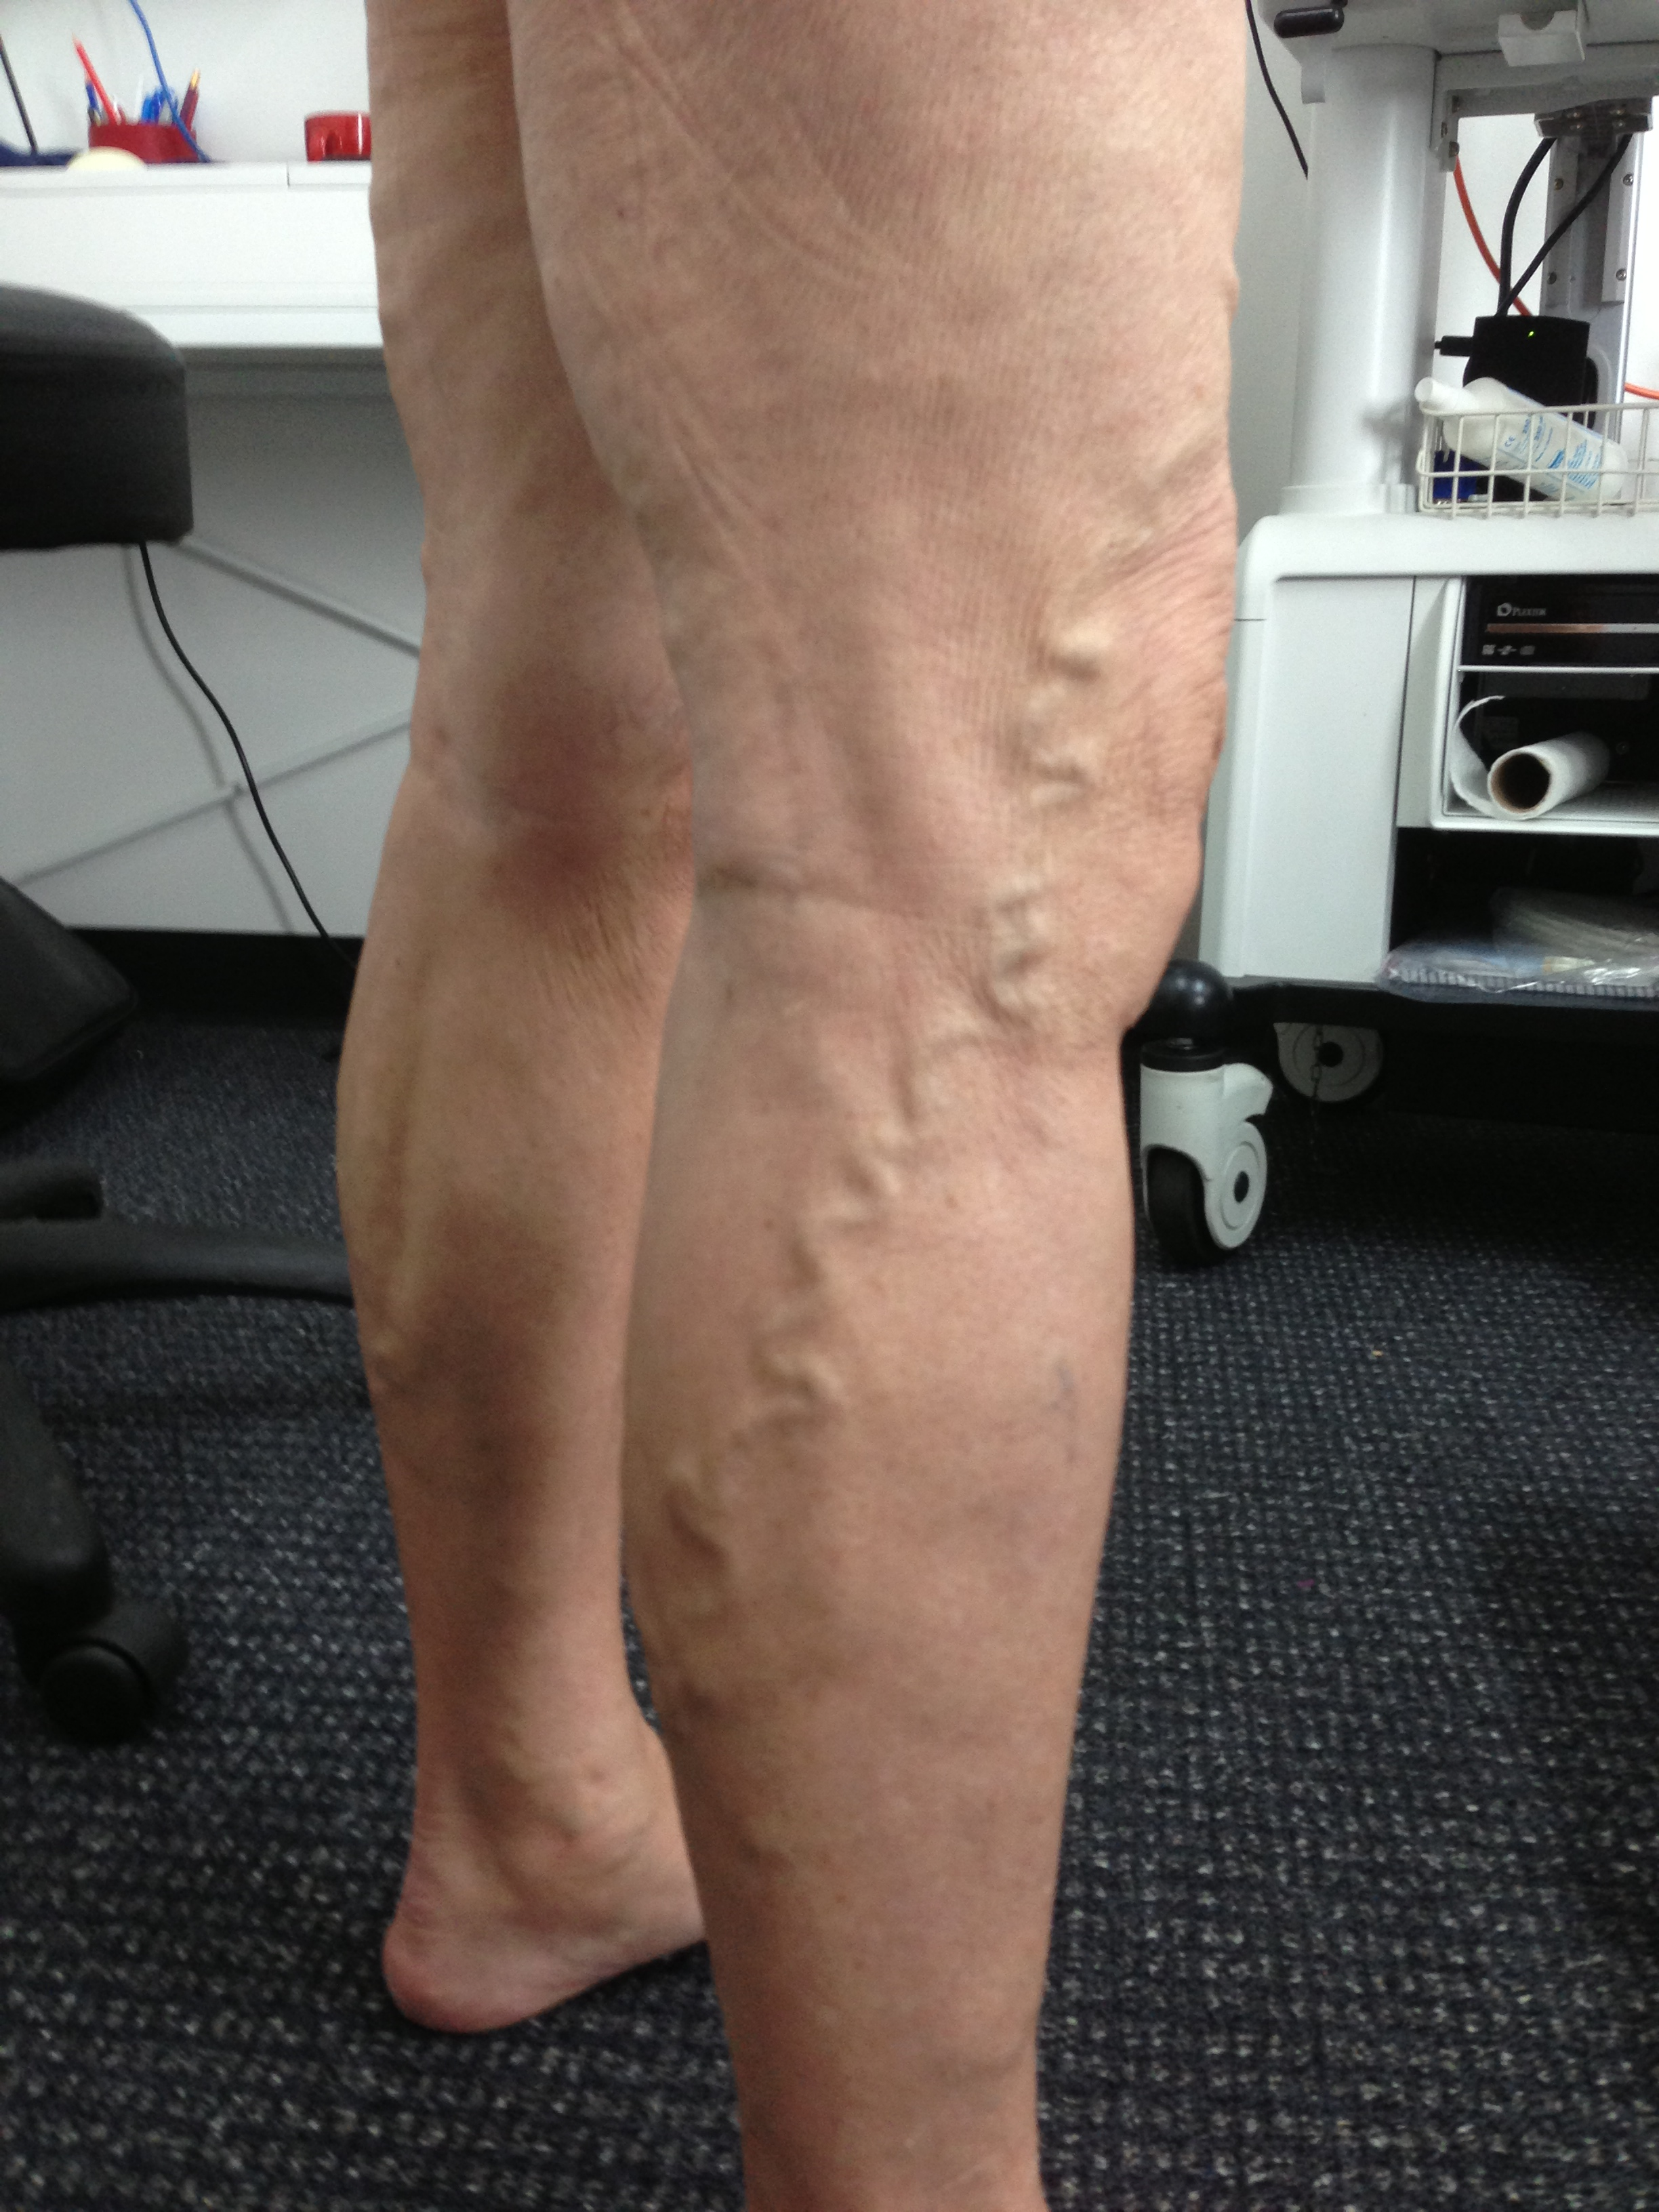 Patient presenting with Varicose Veins - Female, 64 years from Redcliffe.